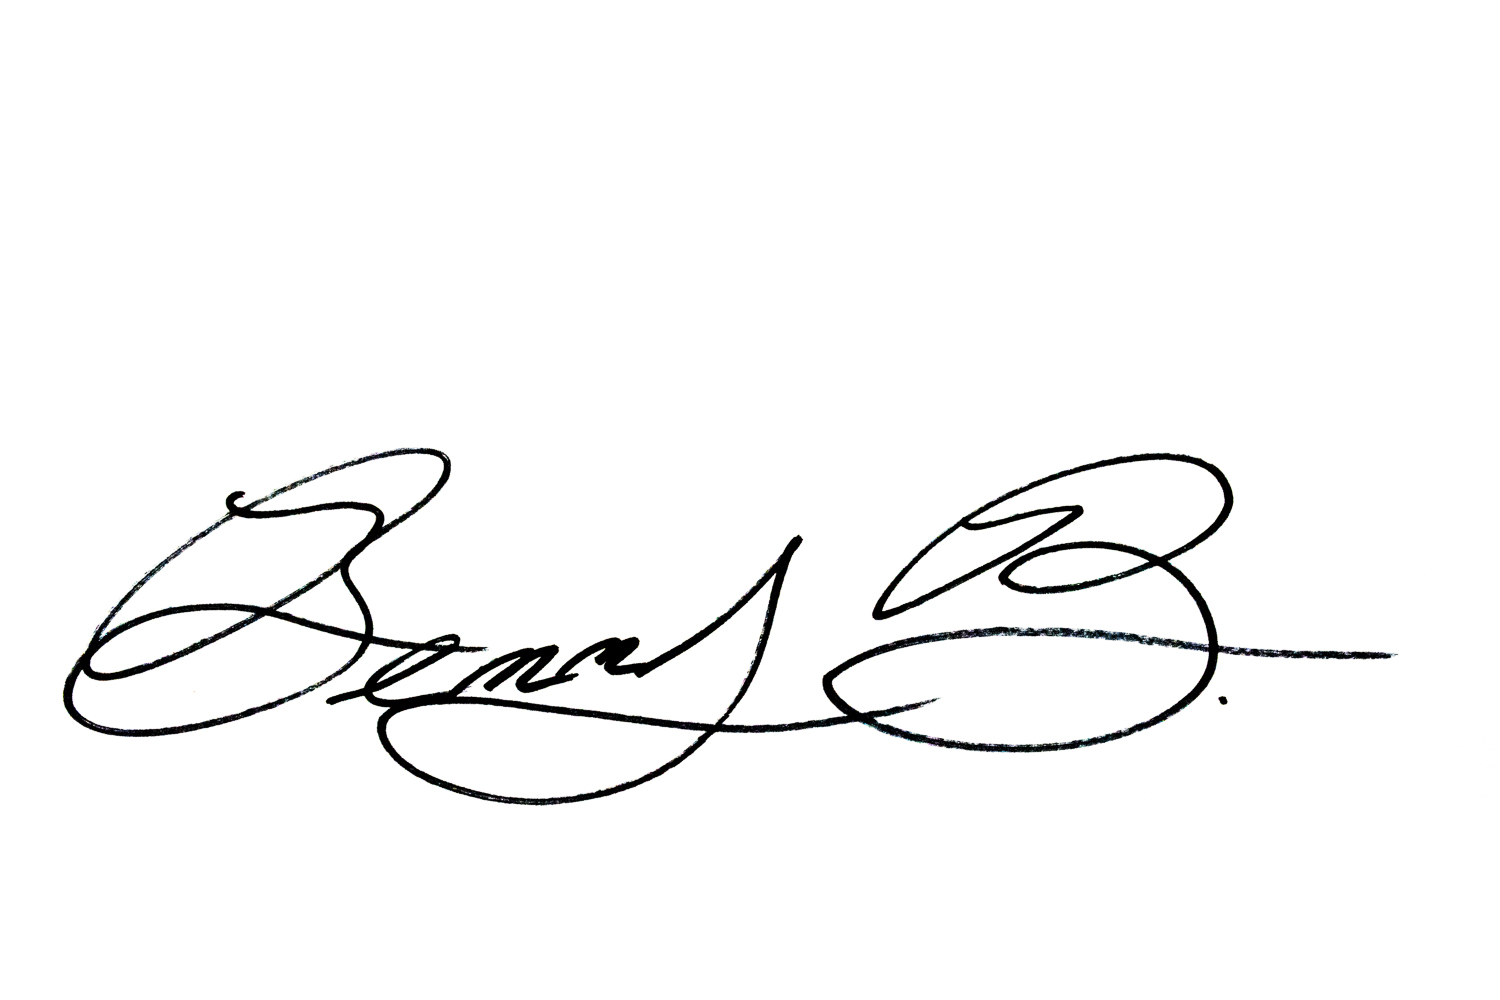 Ben bacon's Signature